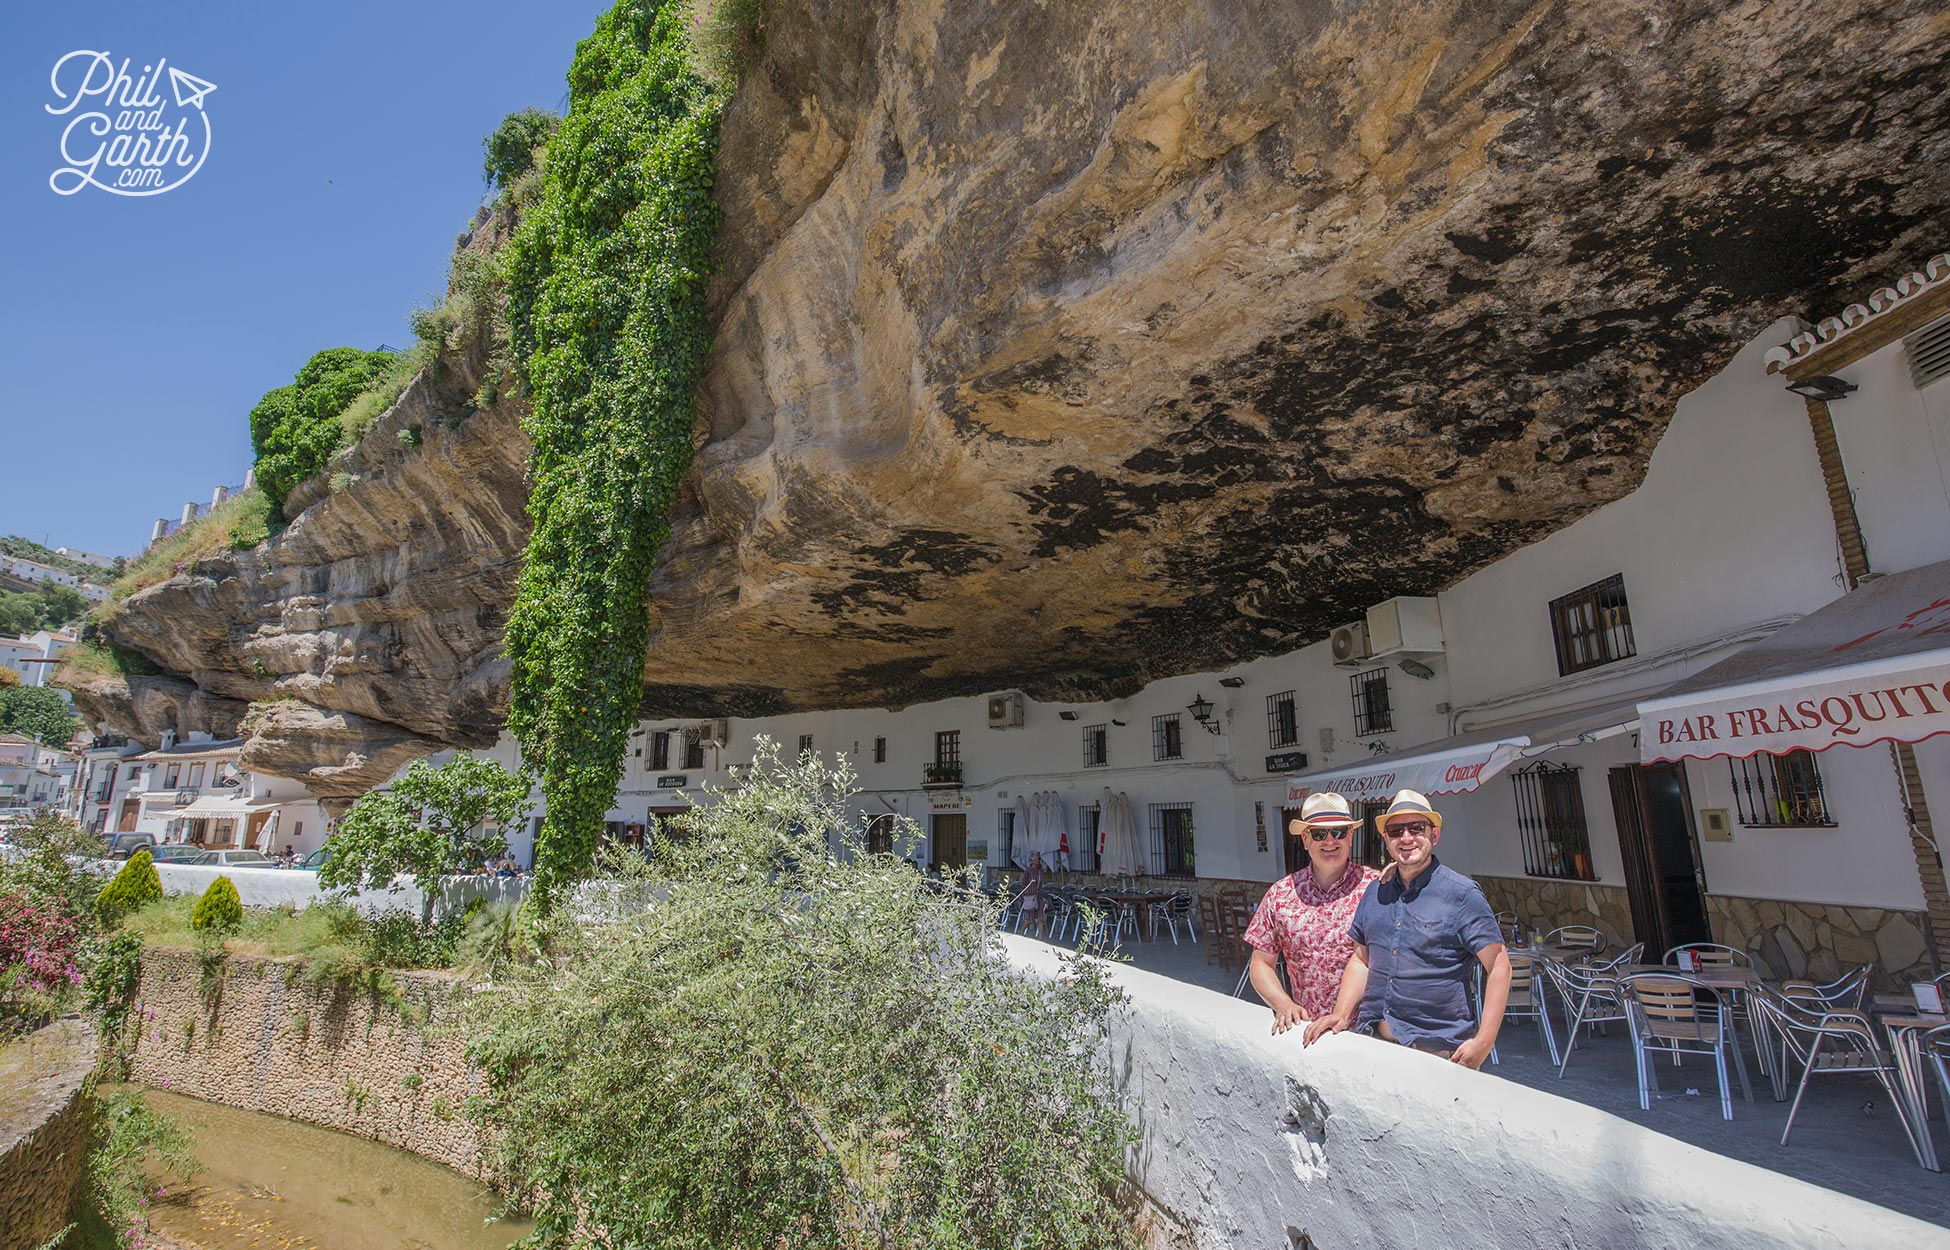 Phil and Garth in Setenil de las Bodegas